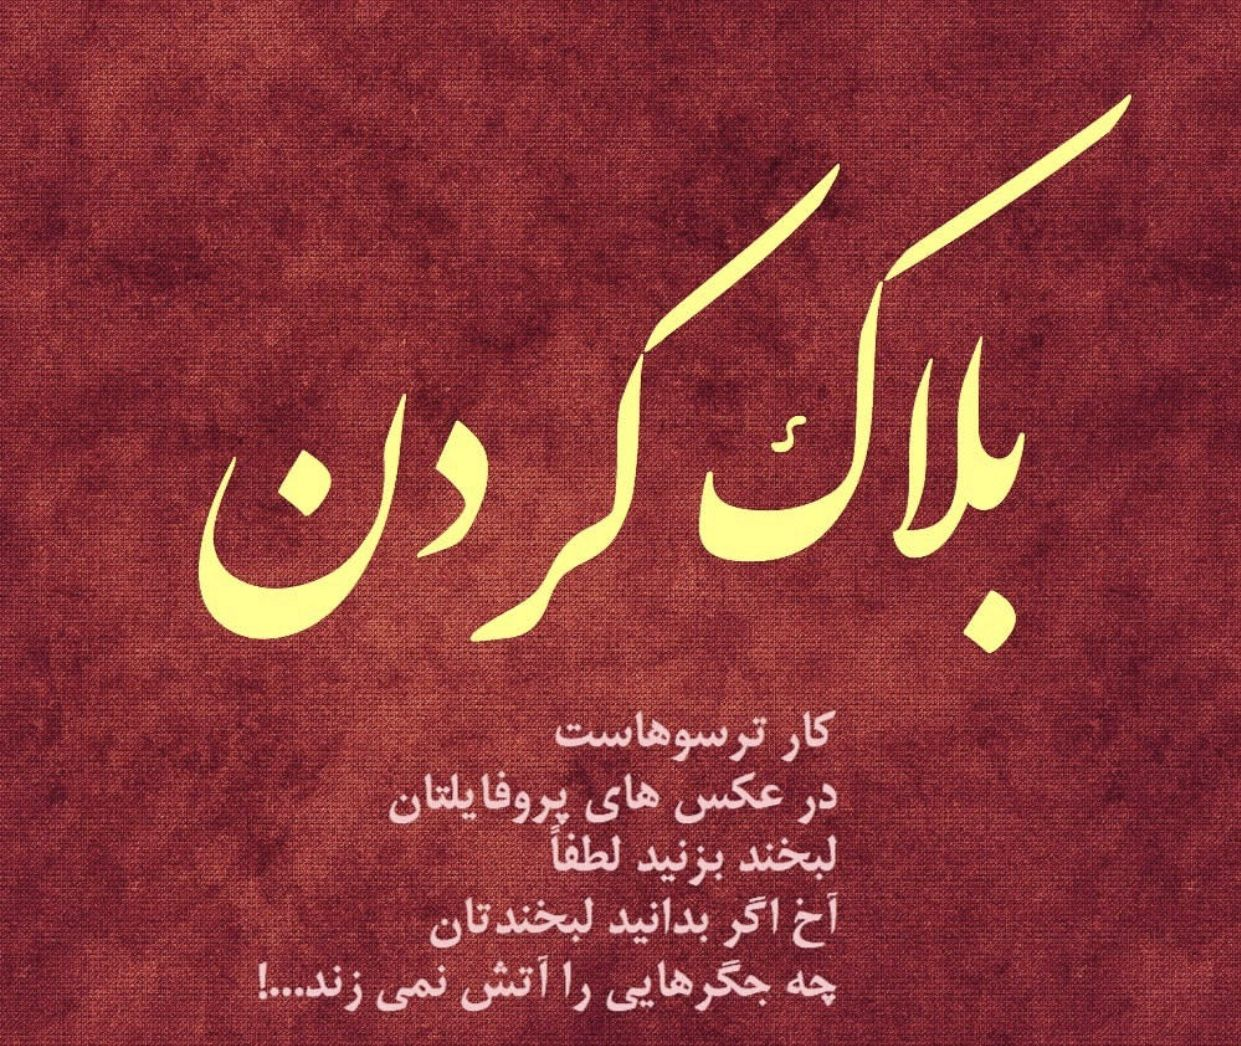 Pin By Mobina On انگیزشی True Words Words Persian Quotes